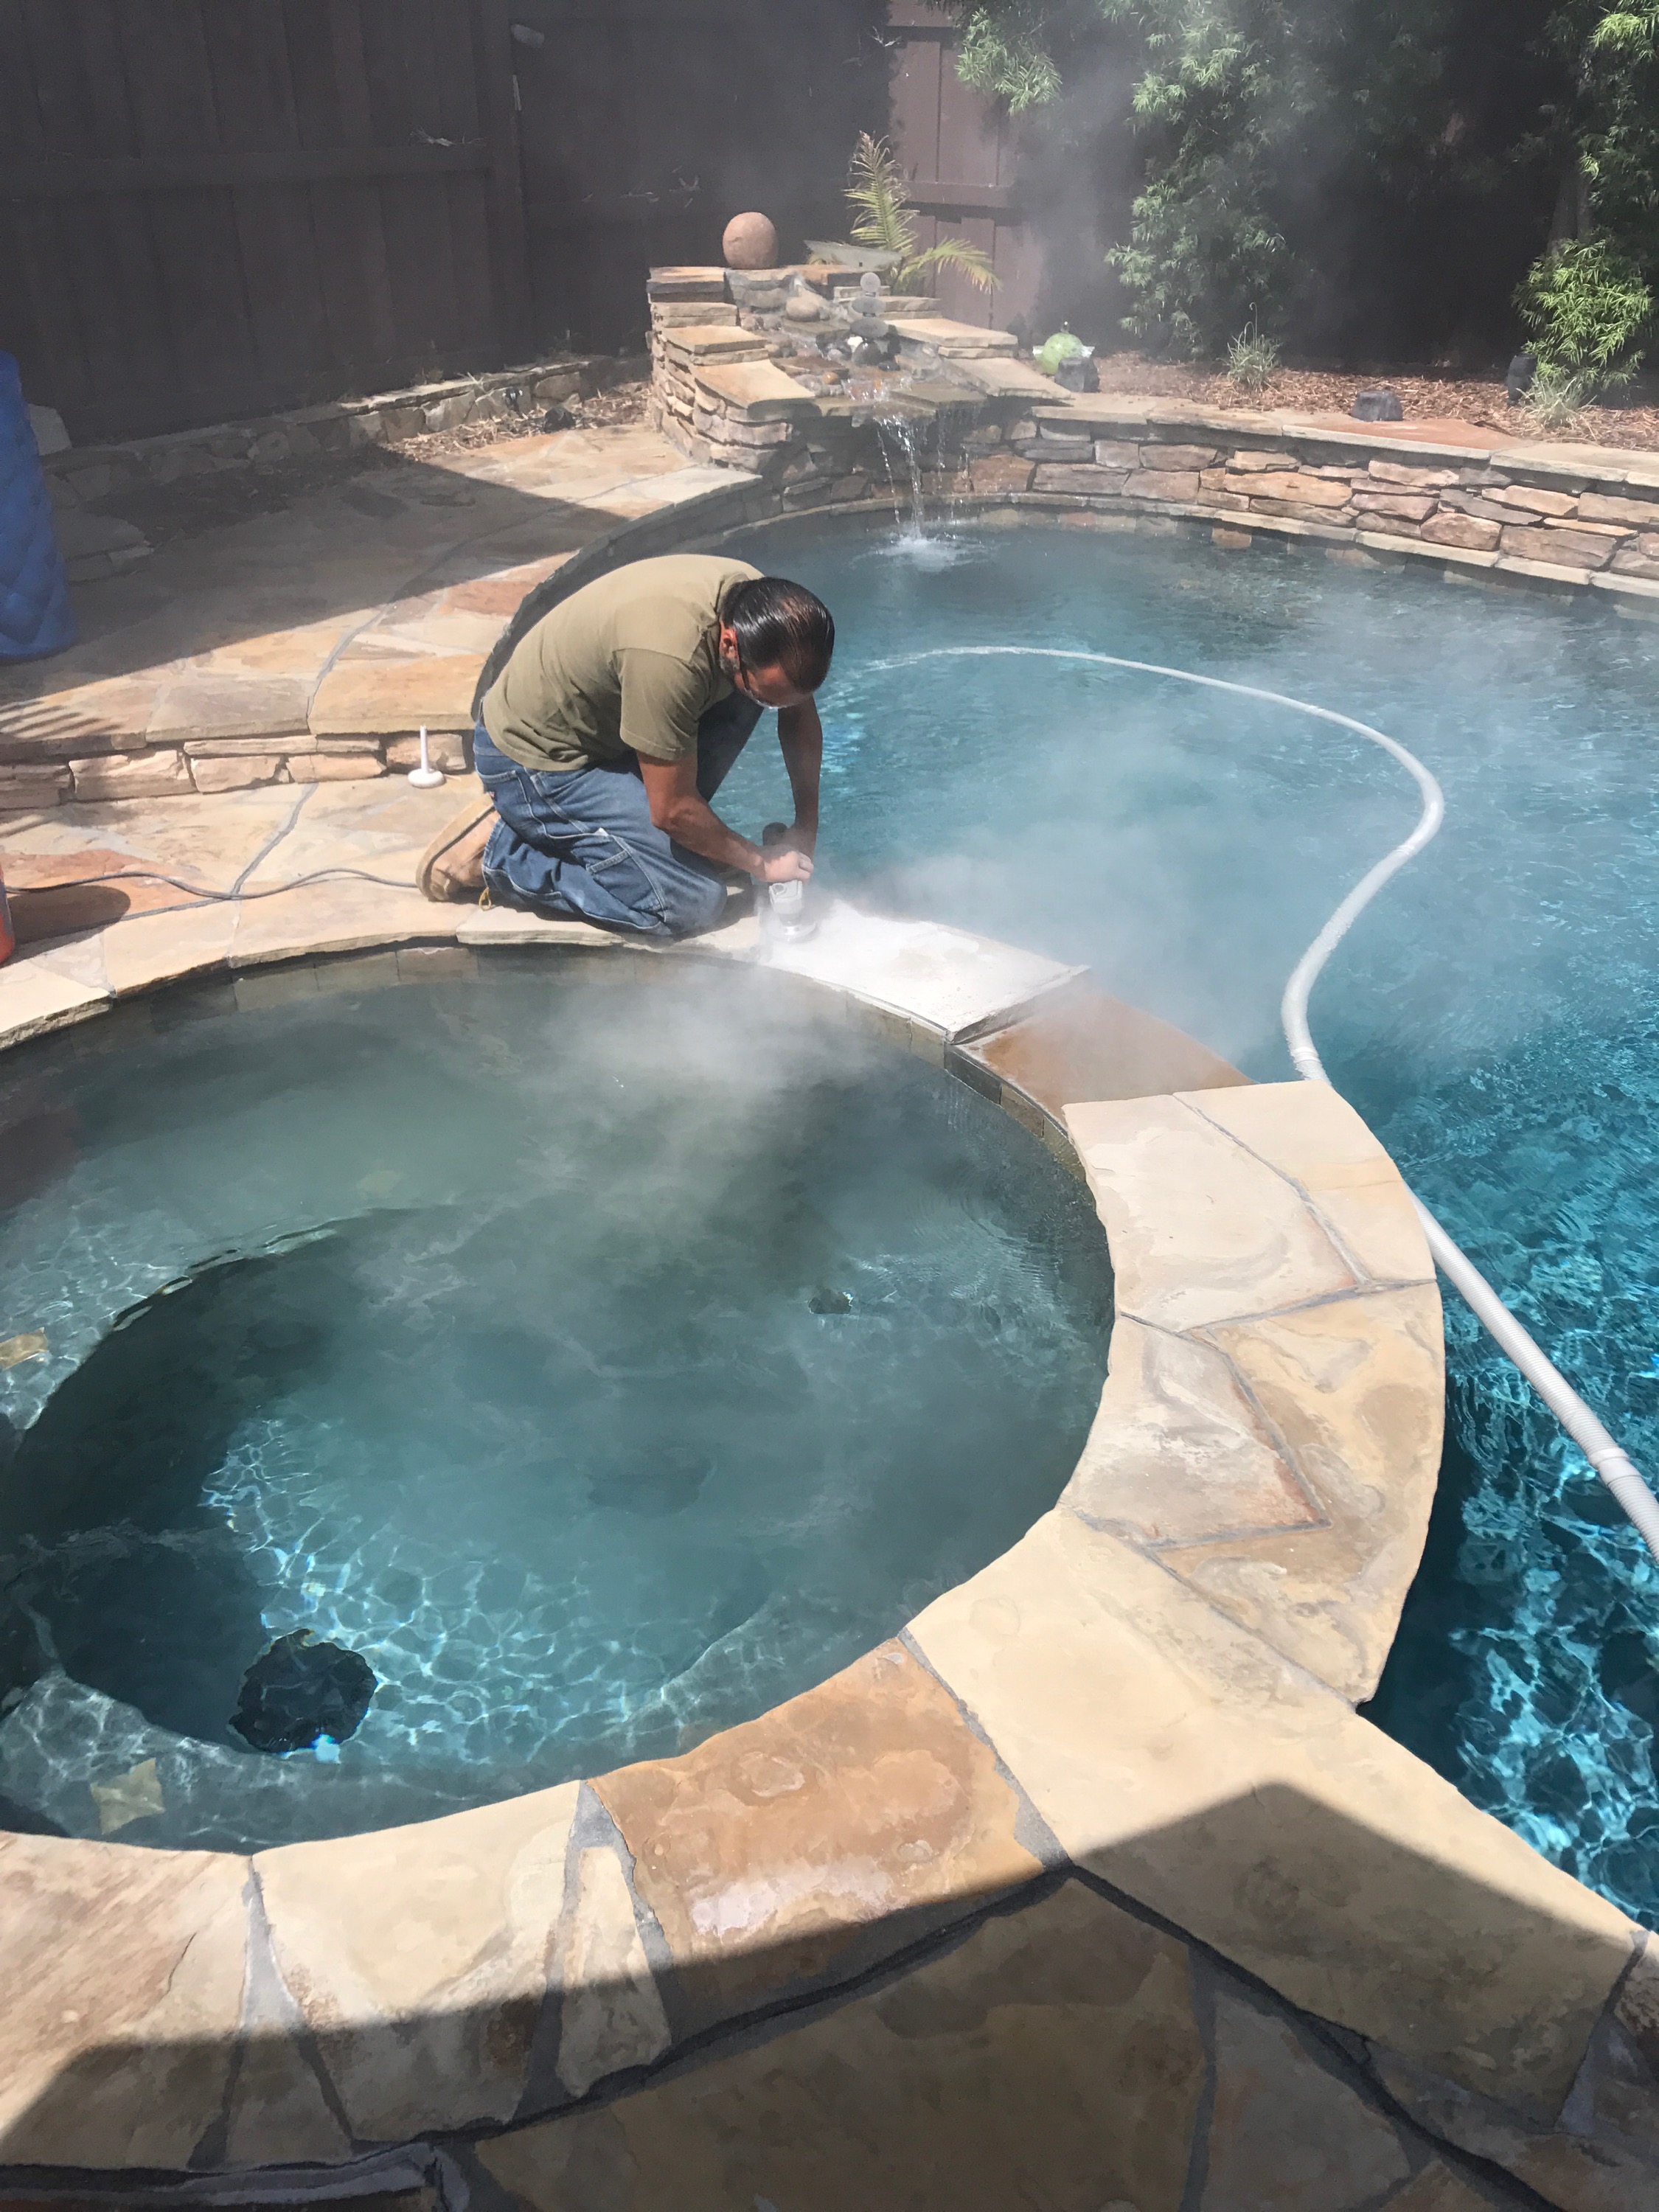 Pool Coping Repair San Diego Swim Care Pool Services